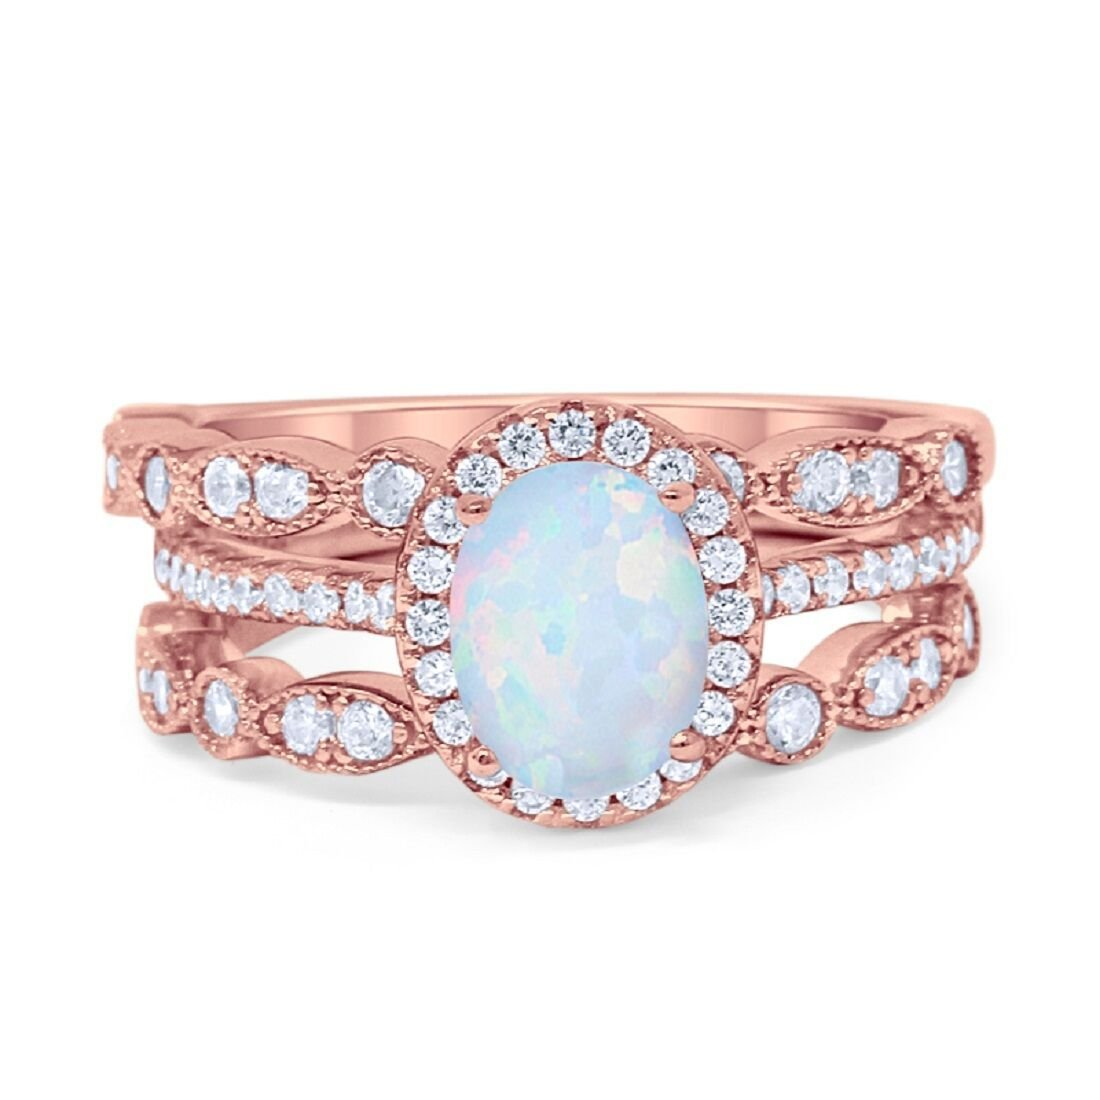 Blue Apple Co. Three Piece Halo Art Deco Wedding Band Engagement Ring Oval Lab White Opal Simulated Round Cubic Zirconia Rose Tone 925 Sterling SilverSize-5 by Blue Apple Co.